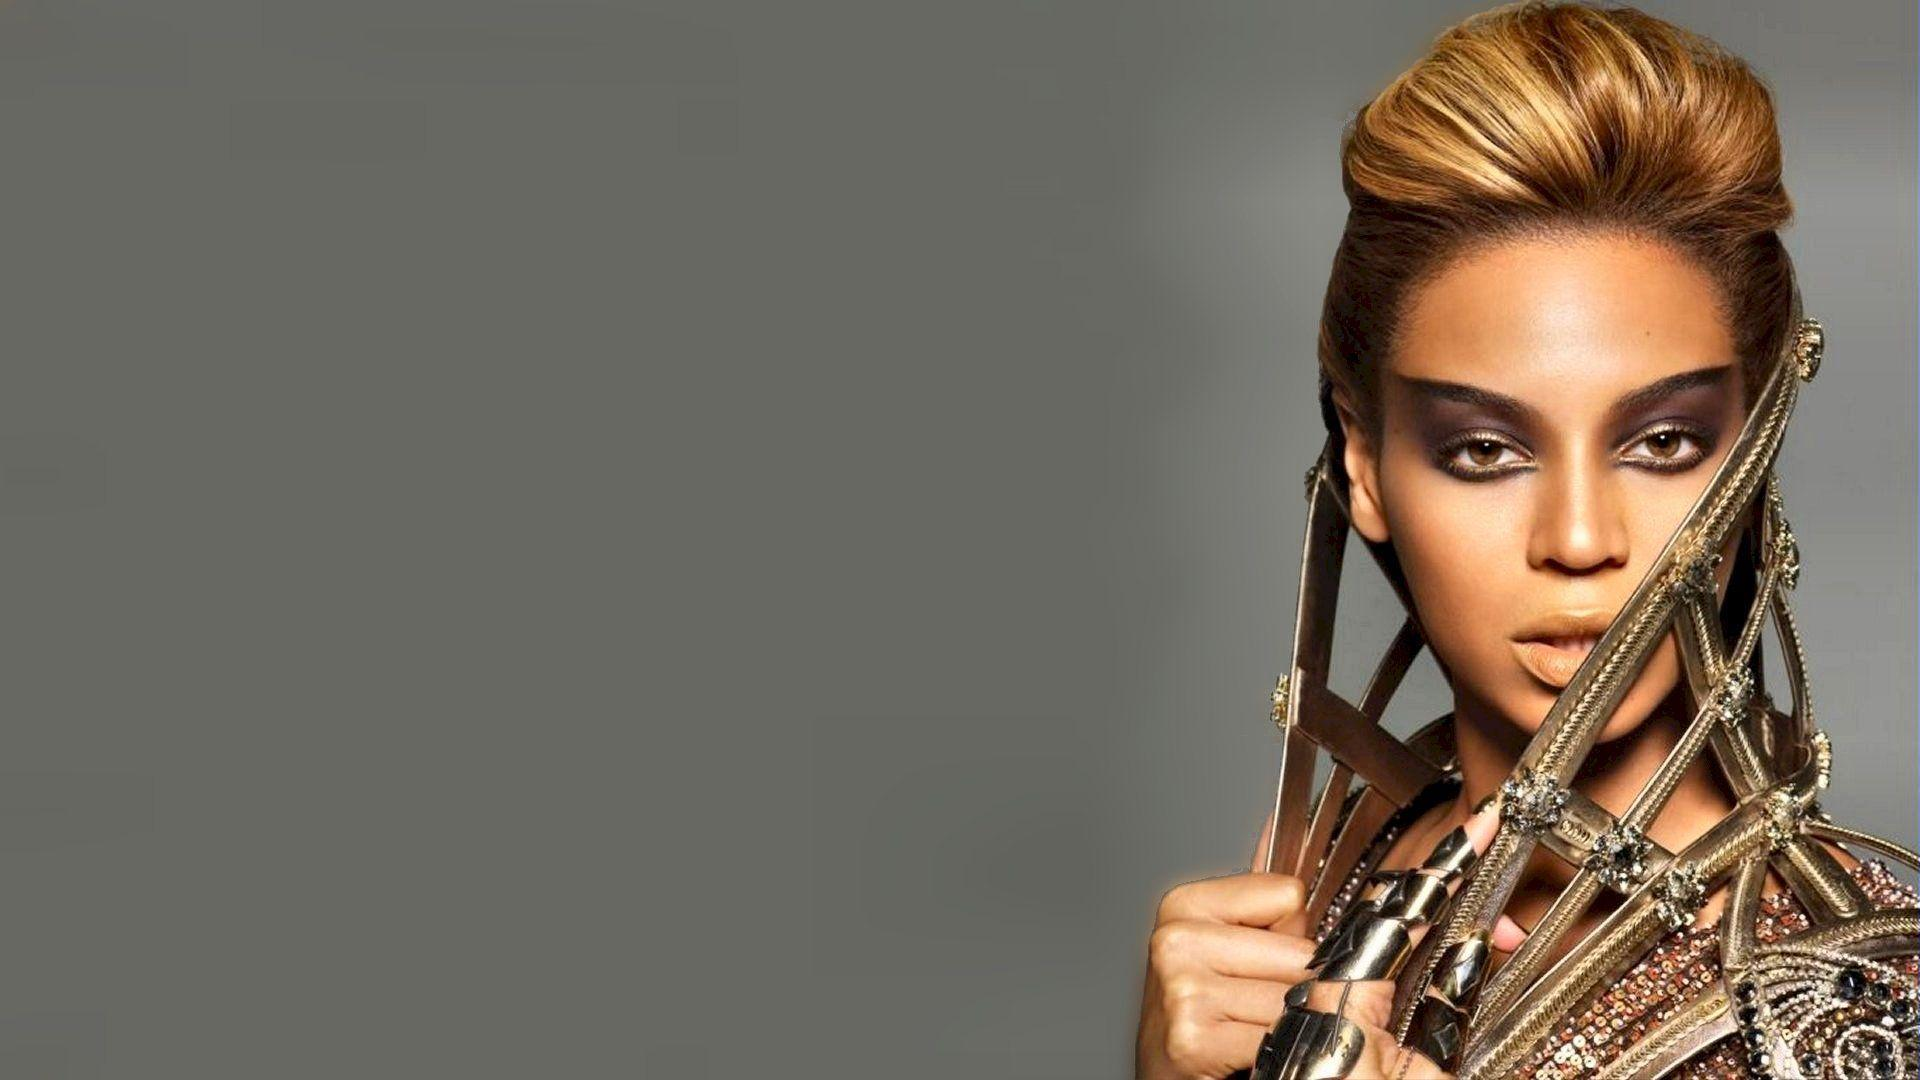 Top 10 beautiful women in the World, Beyonce knowles